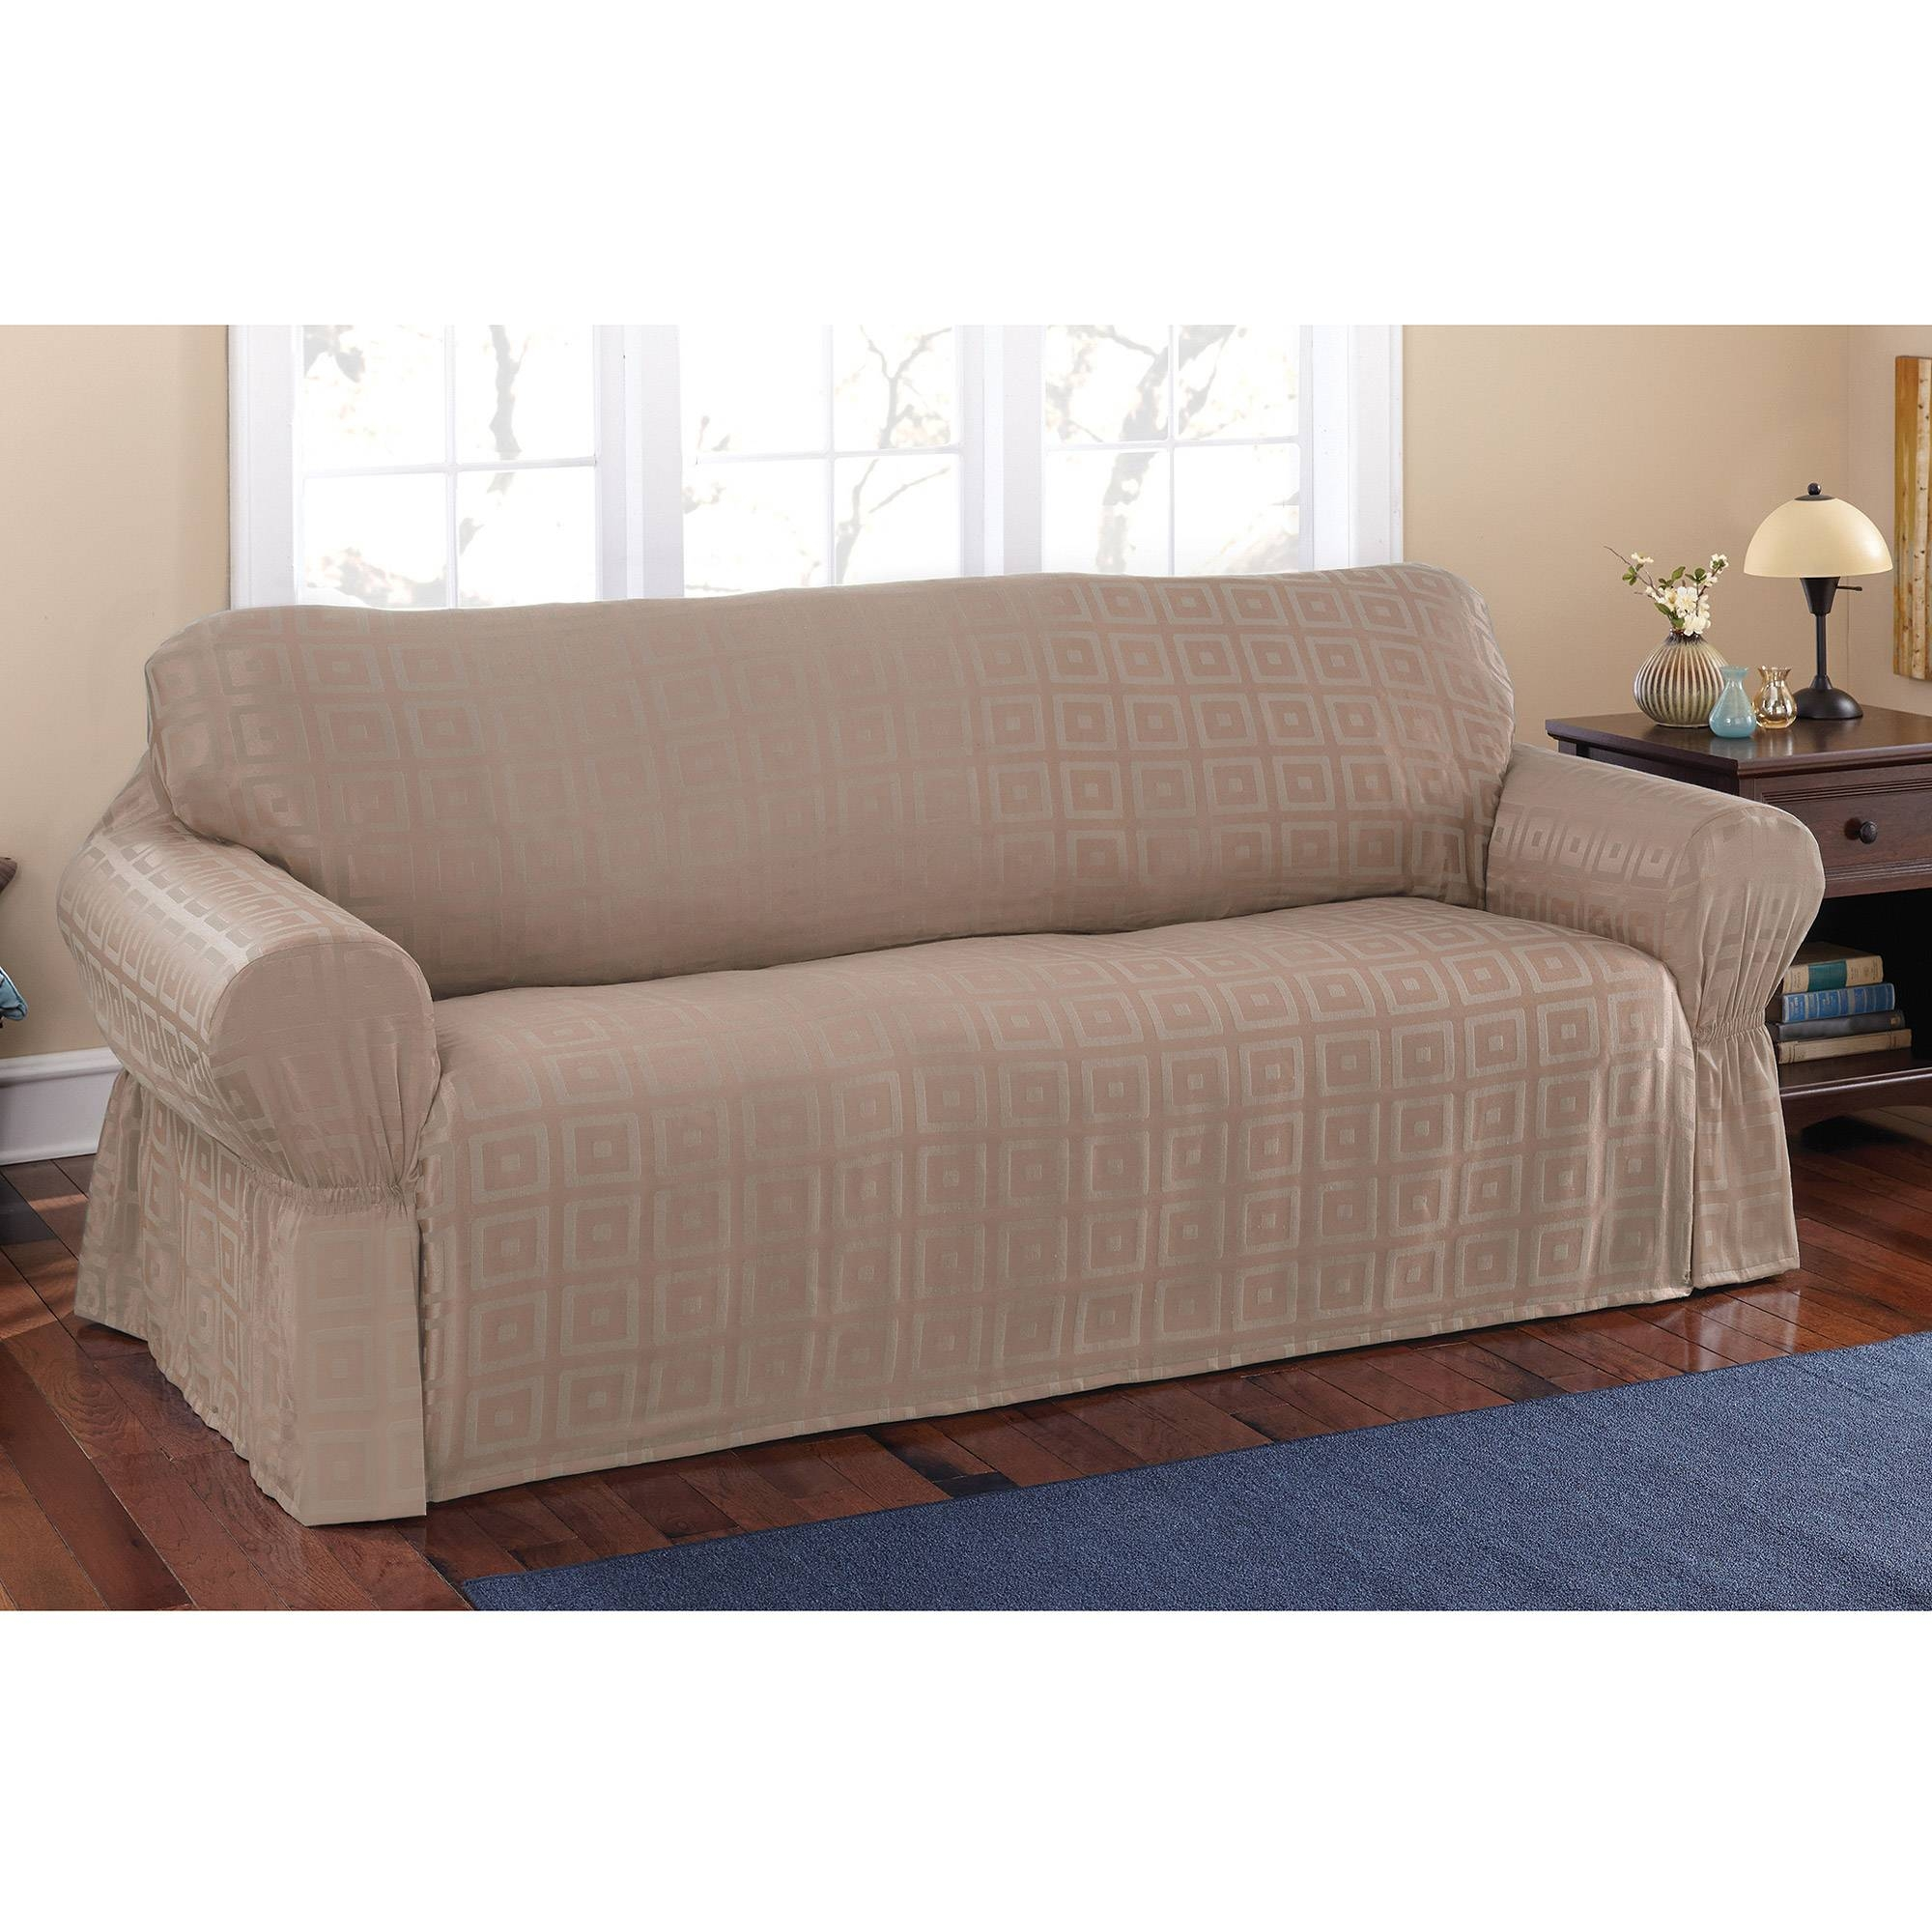 Sofas Center : Armless Sofa Couch Covers Leather Cover Walmart As intended for Armless Couch Slipcovers (Image 13 of 15)